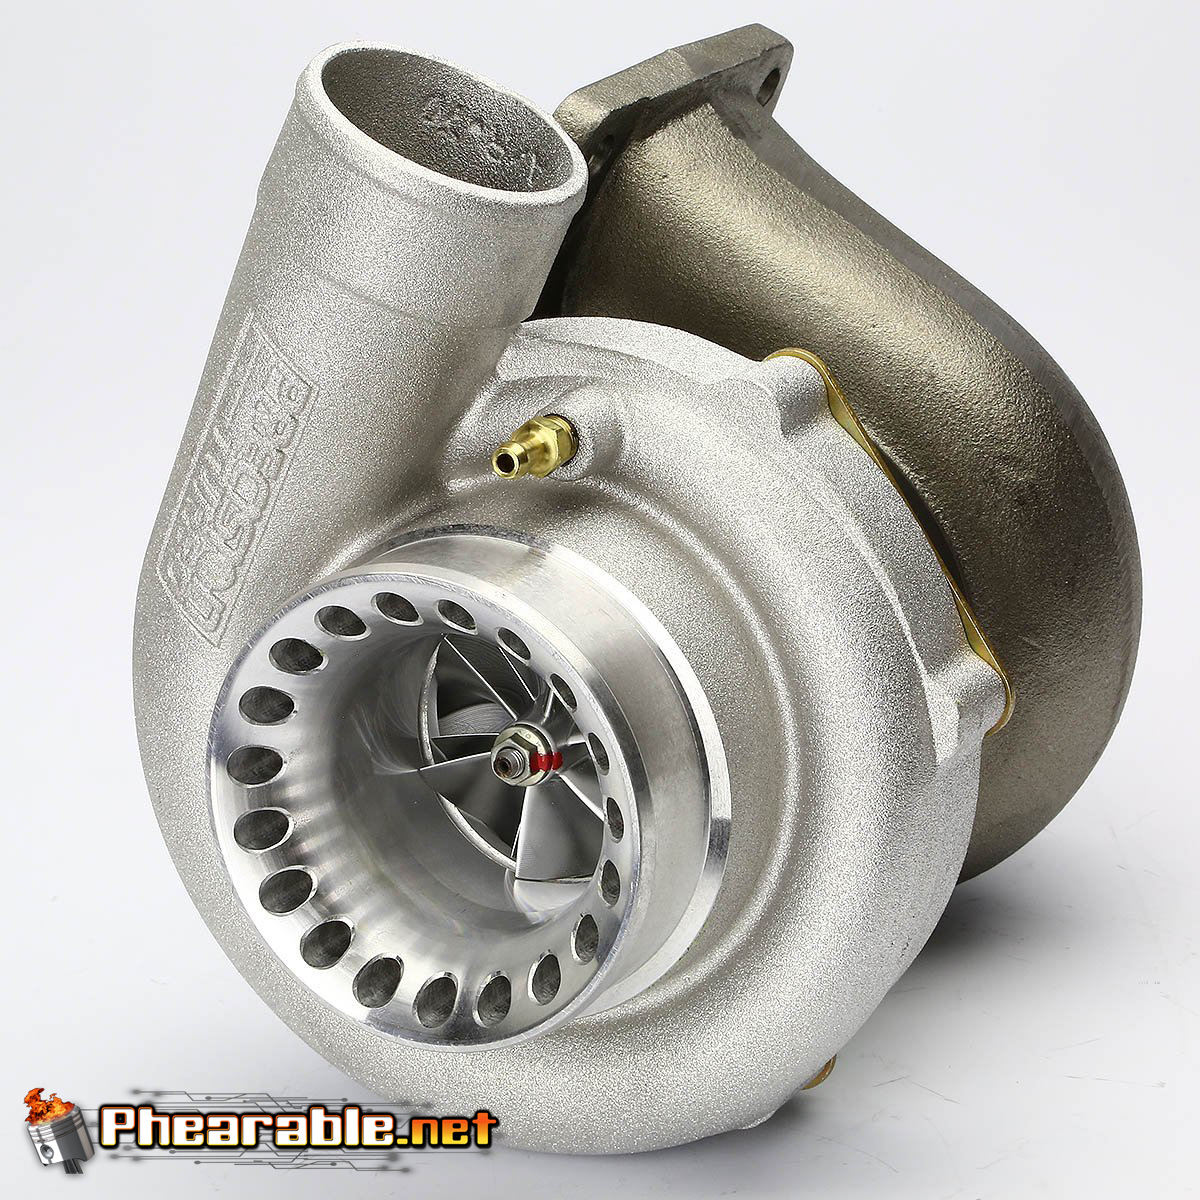 Precision Turbo 6870 Gen 2: Precision 6266 Gen2 Turbo Charger Ball Bearing